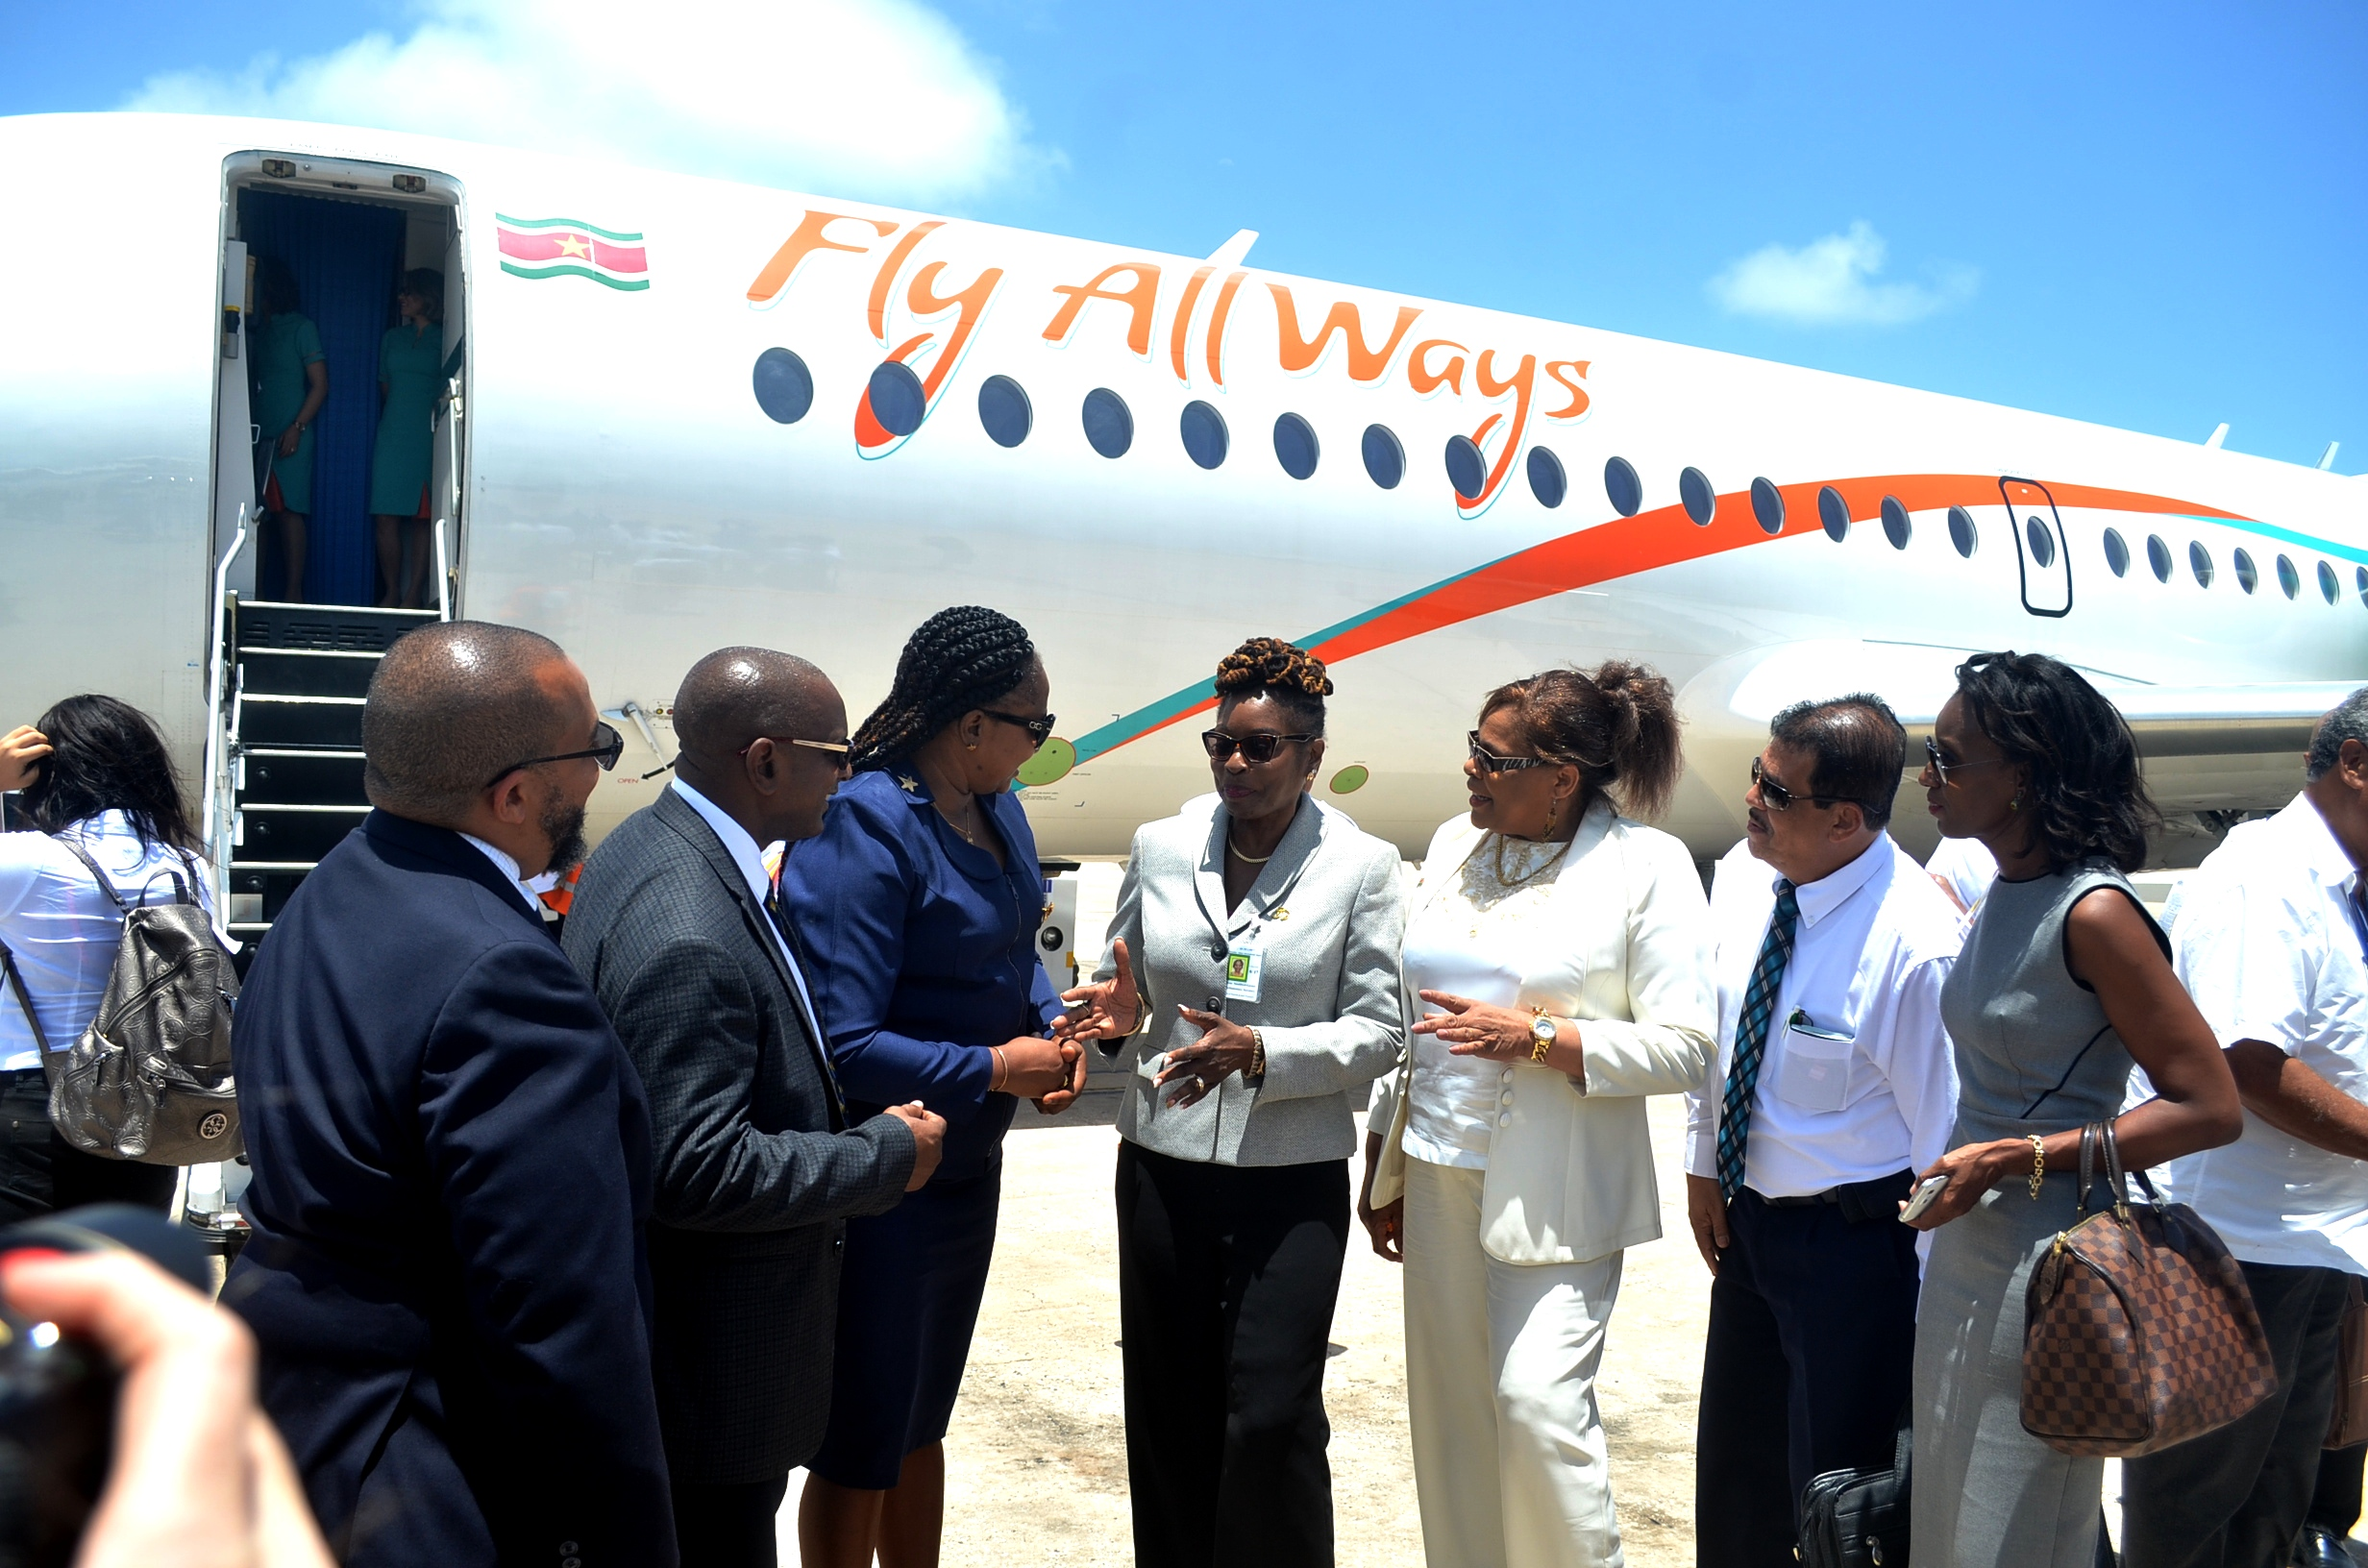 fly allways enters guyana market with flights to barbados